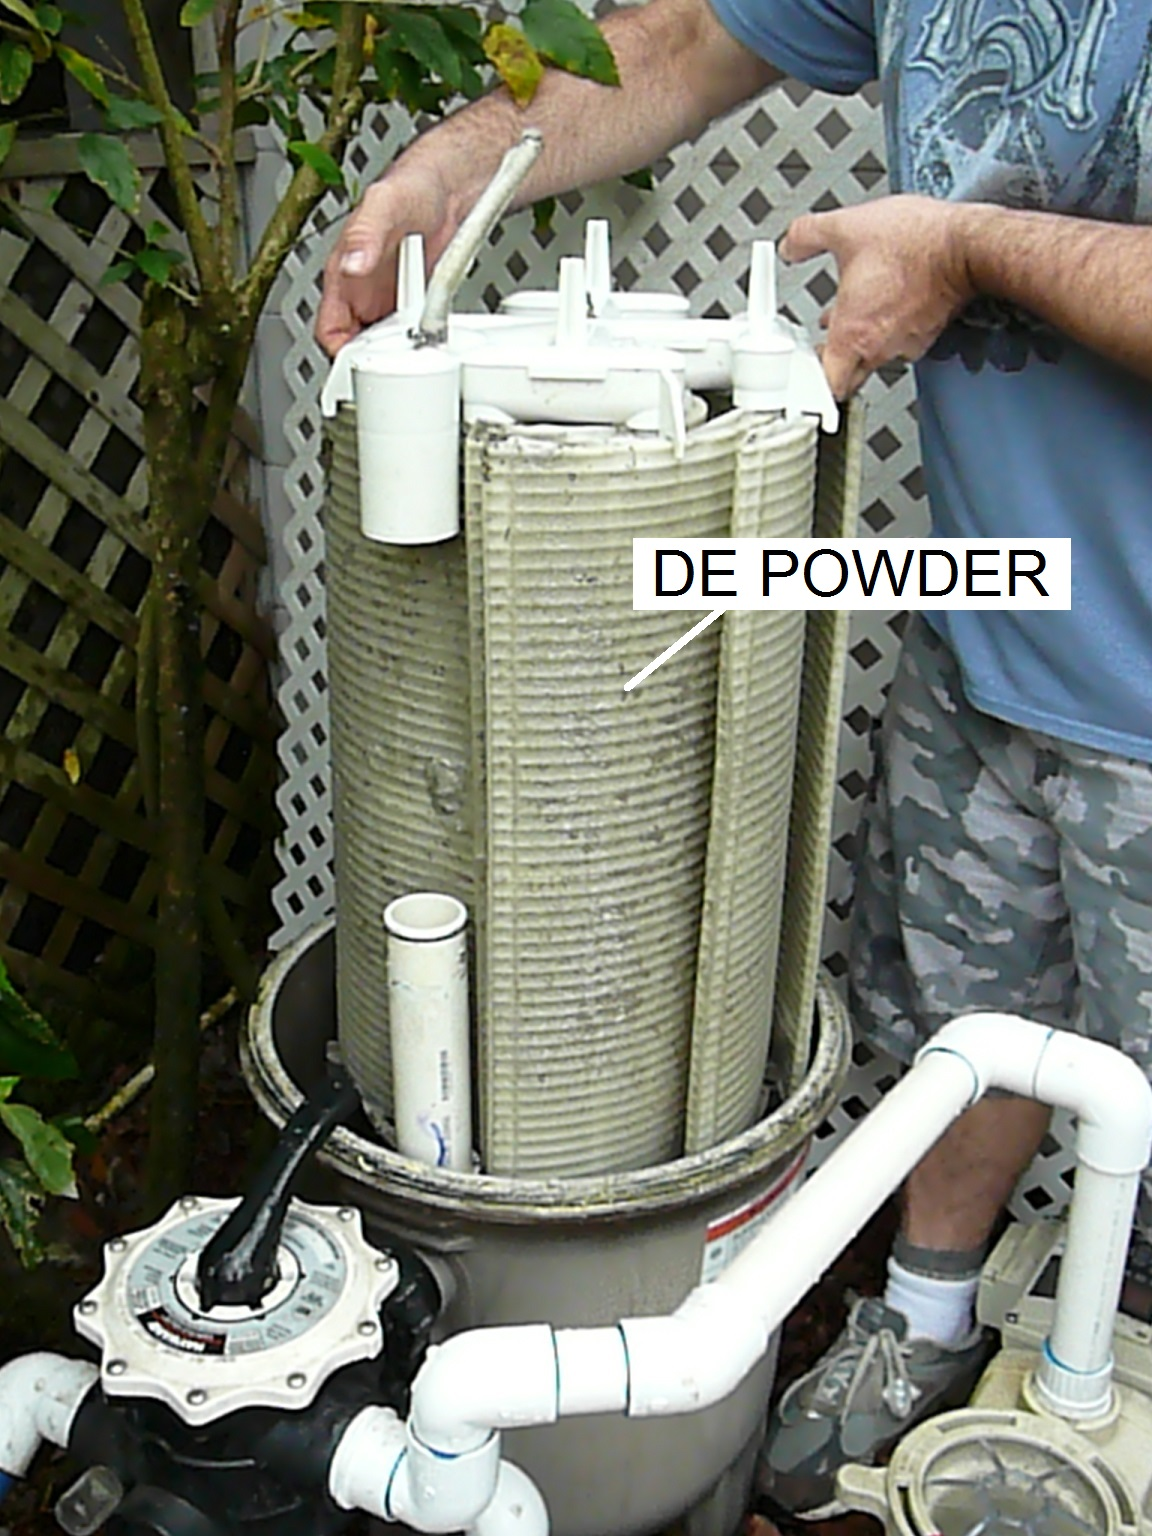 Jacuzzi Pool De How To Prevent De Filter Powder Returning To Pool Inyopools